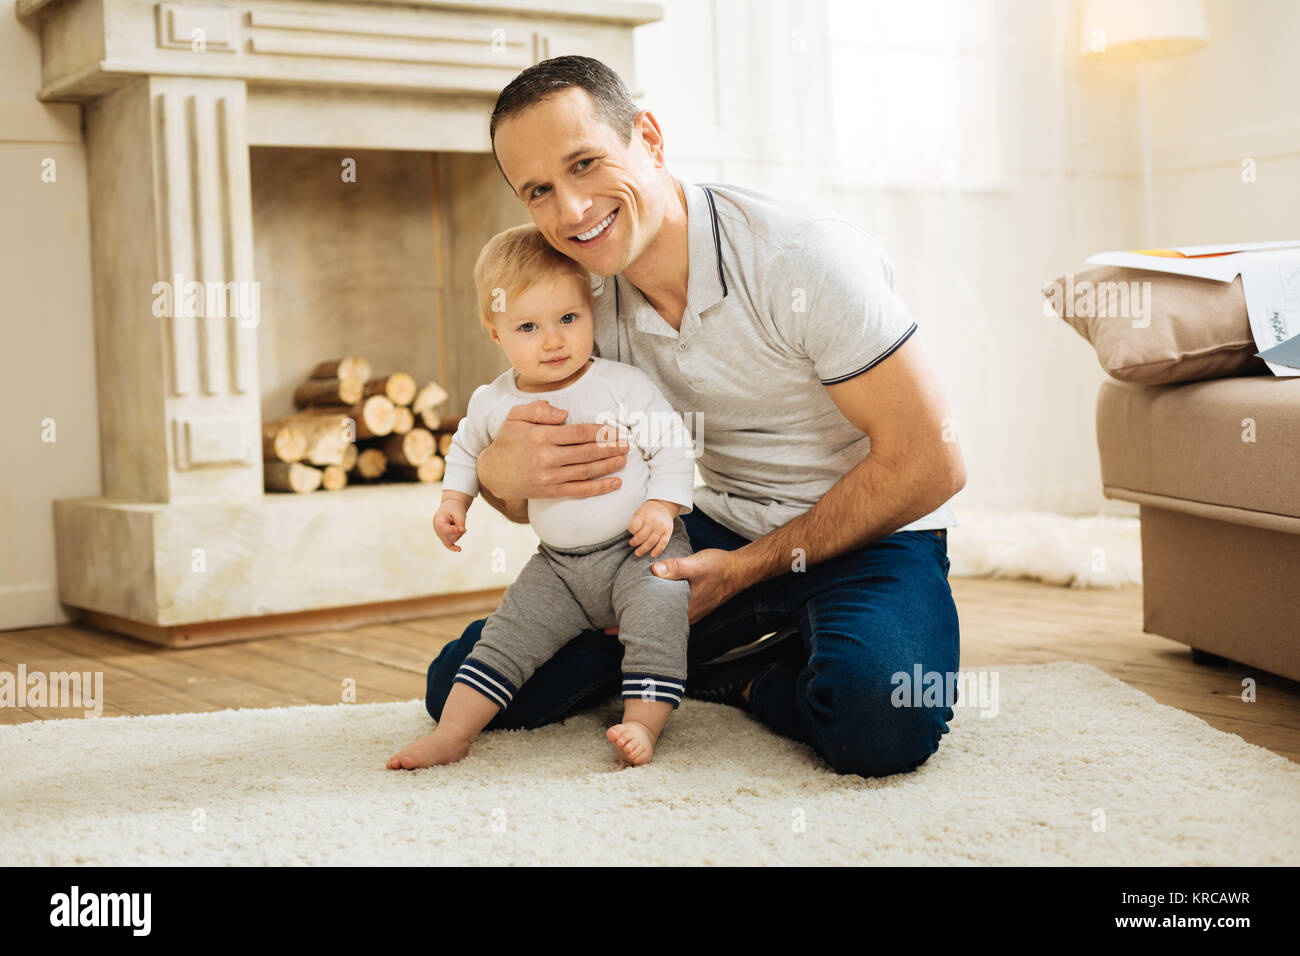 Happy young father hugging his child while sitting in a living room - Stock Image